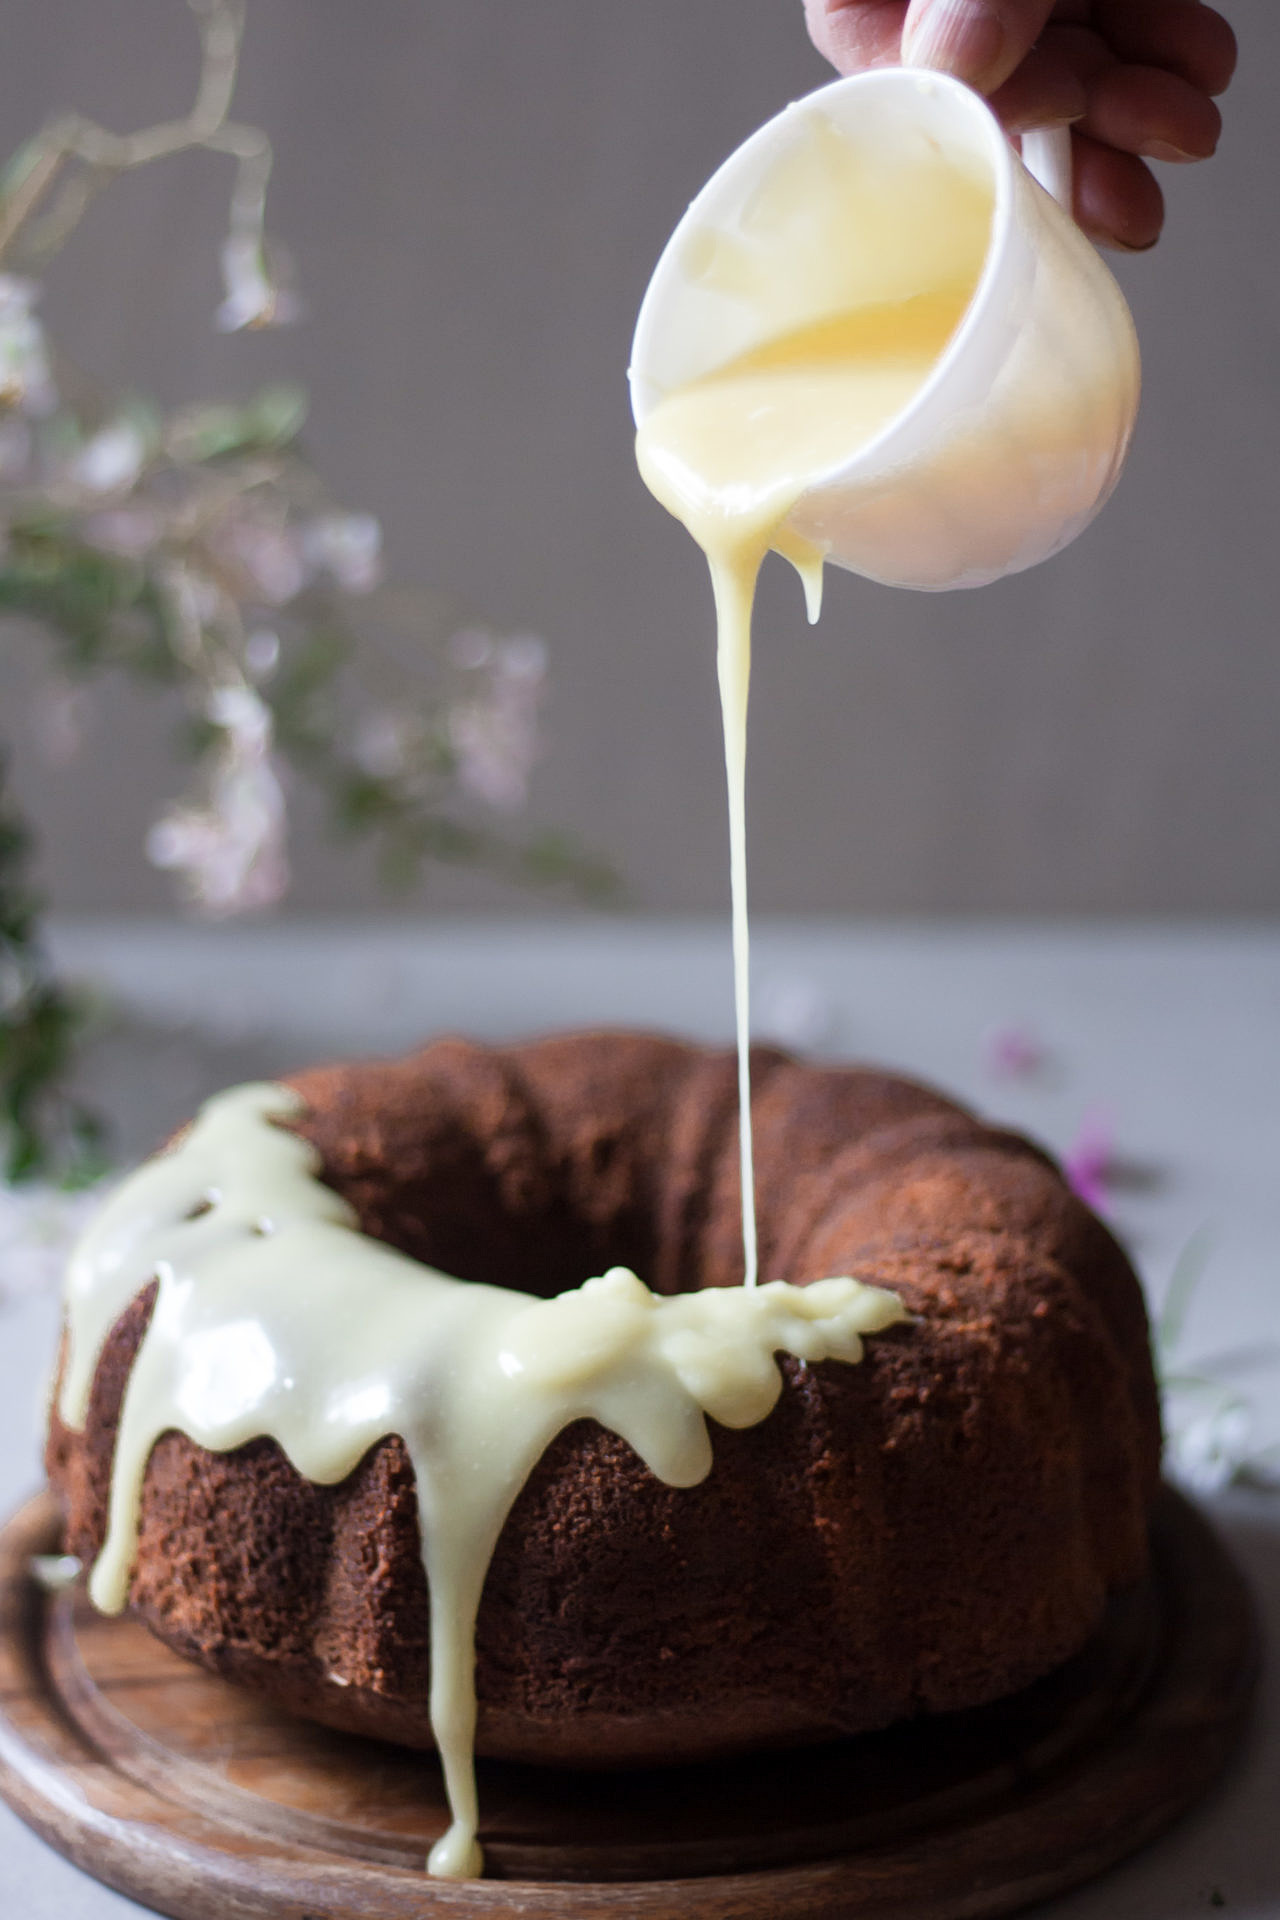 Low FODMAP Gluten-Free Marble Bundt Cake. This cake is flavorful, moist and perfectly sweetened. Every bite melts in the mouth.